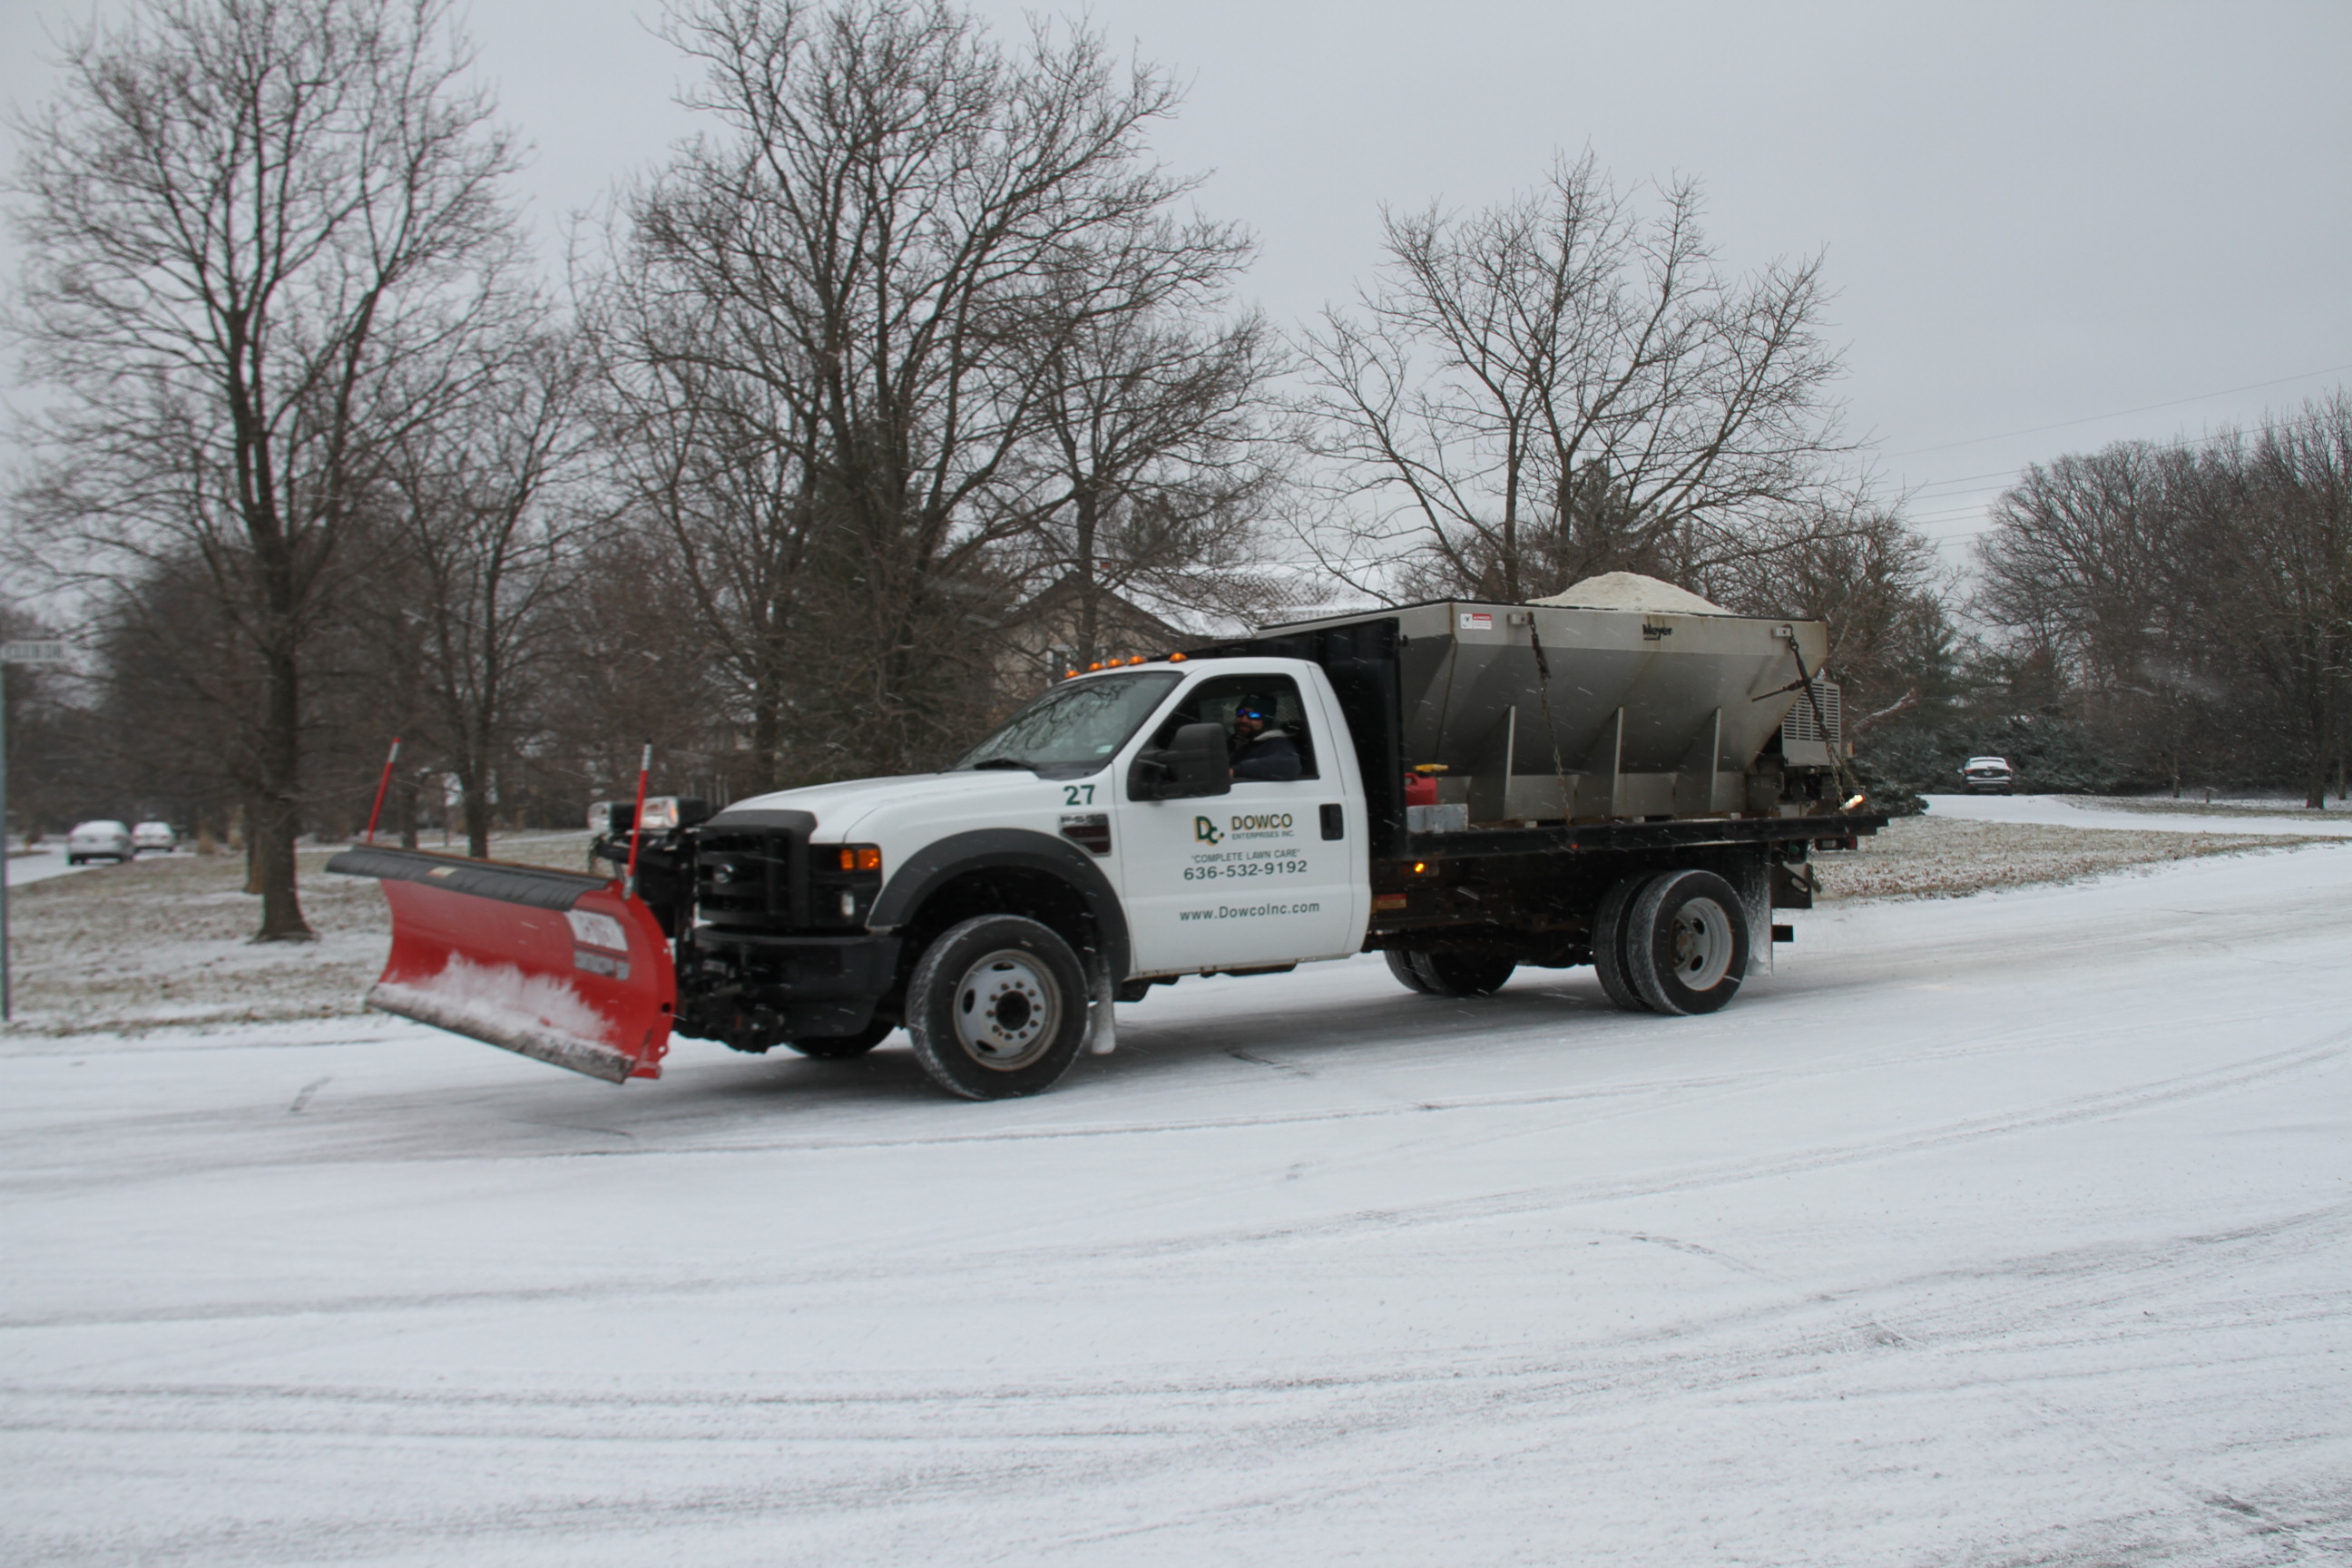 Dowco Snow Removal